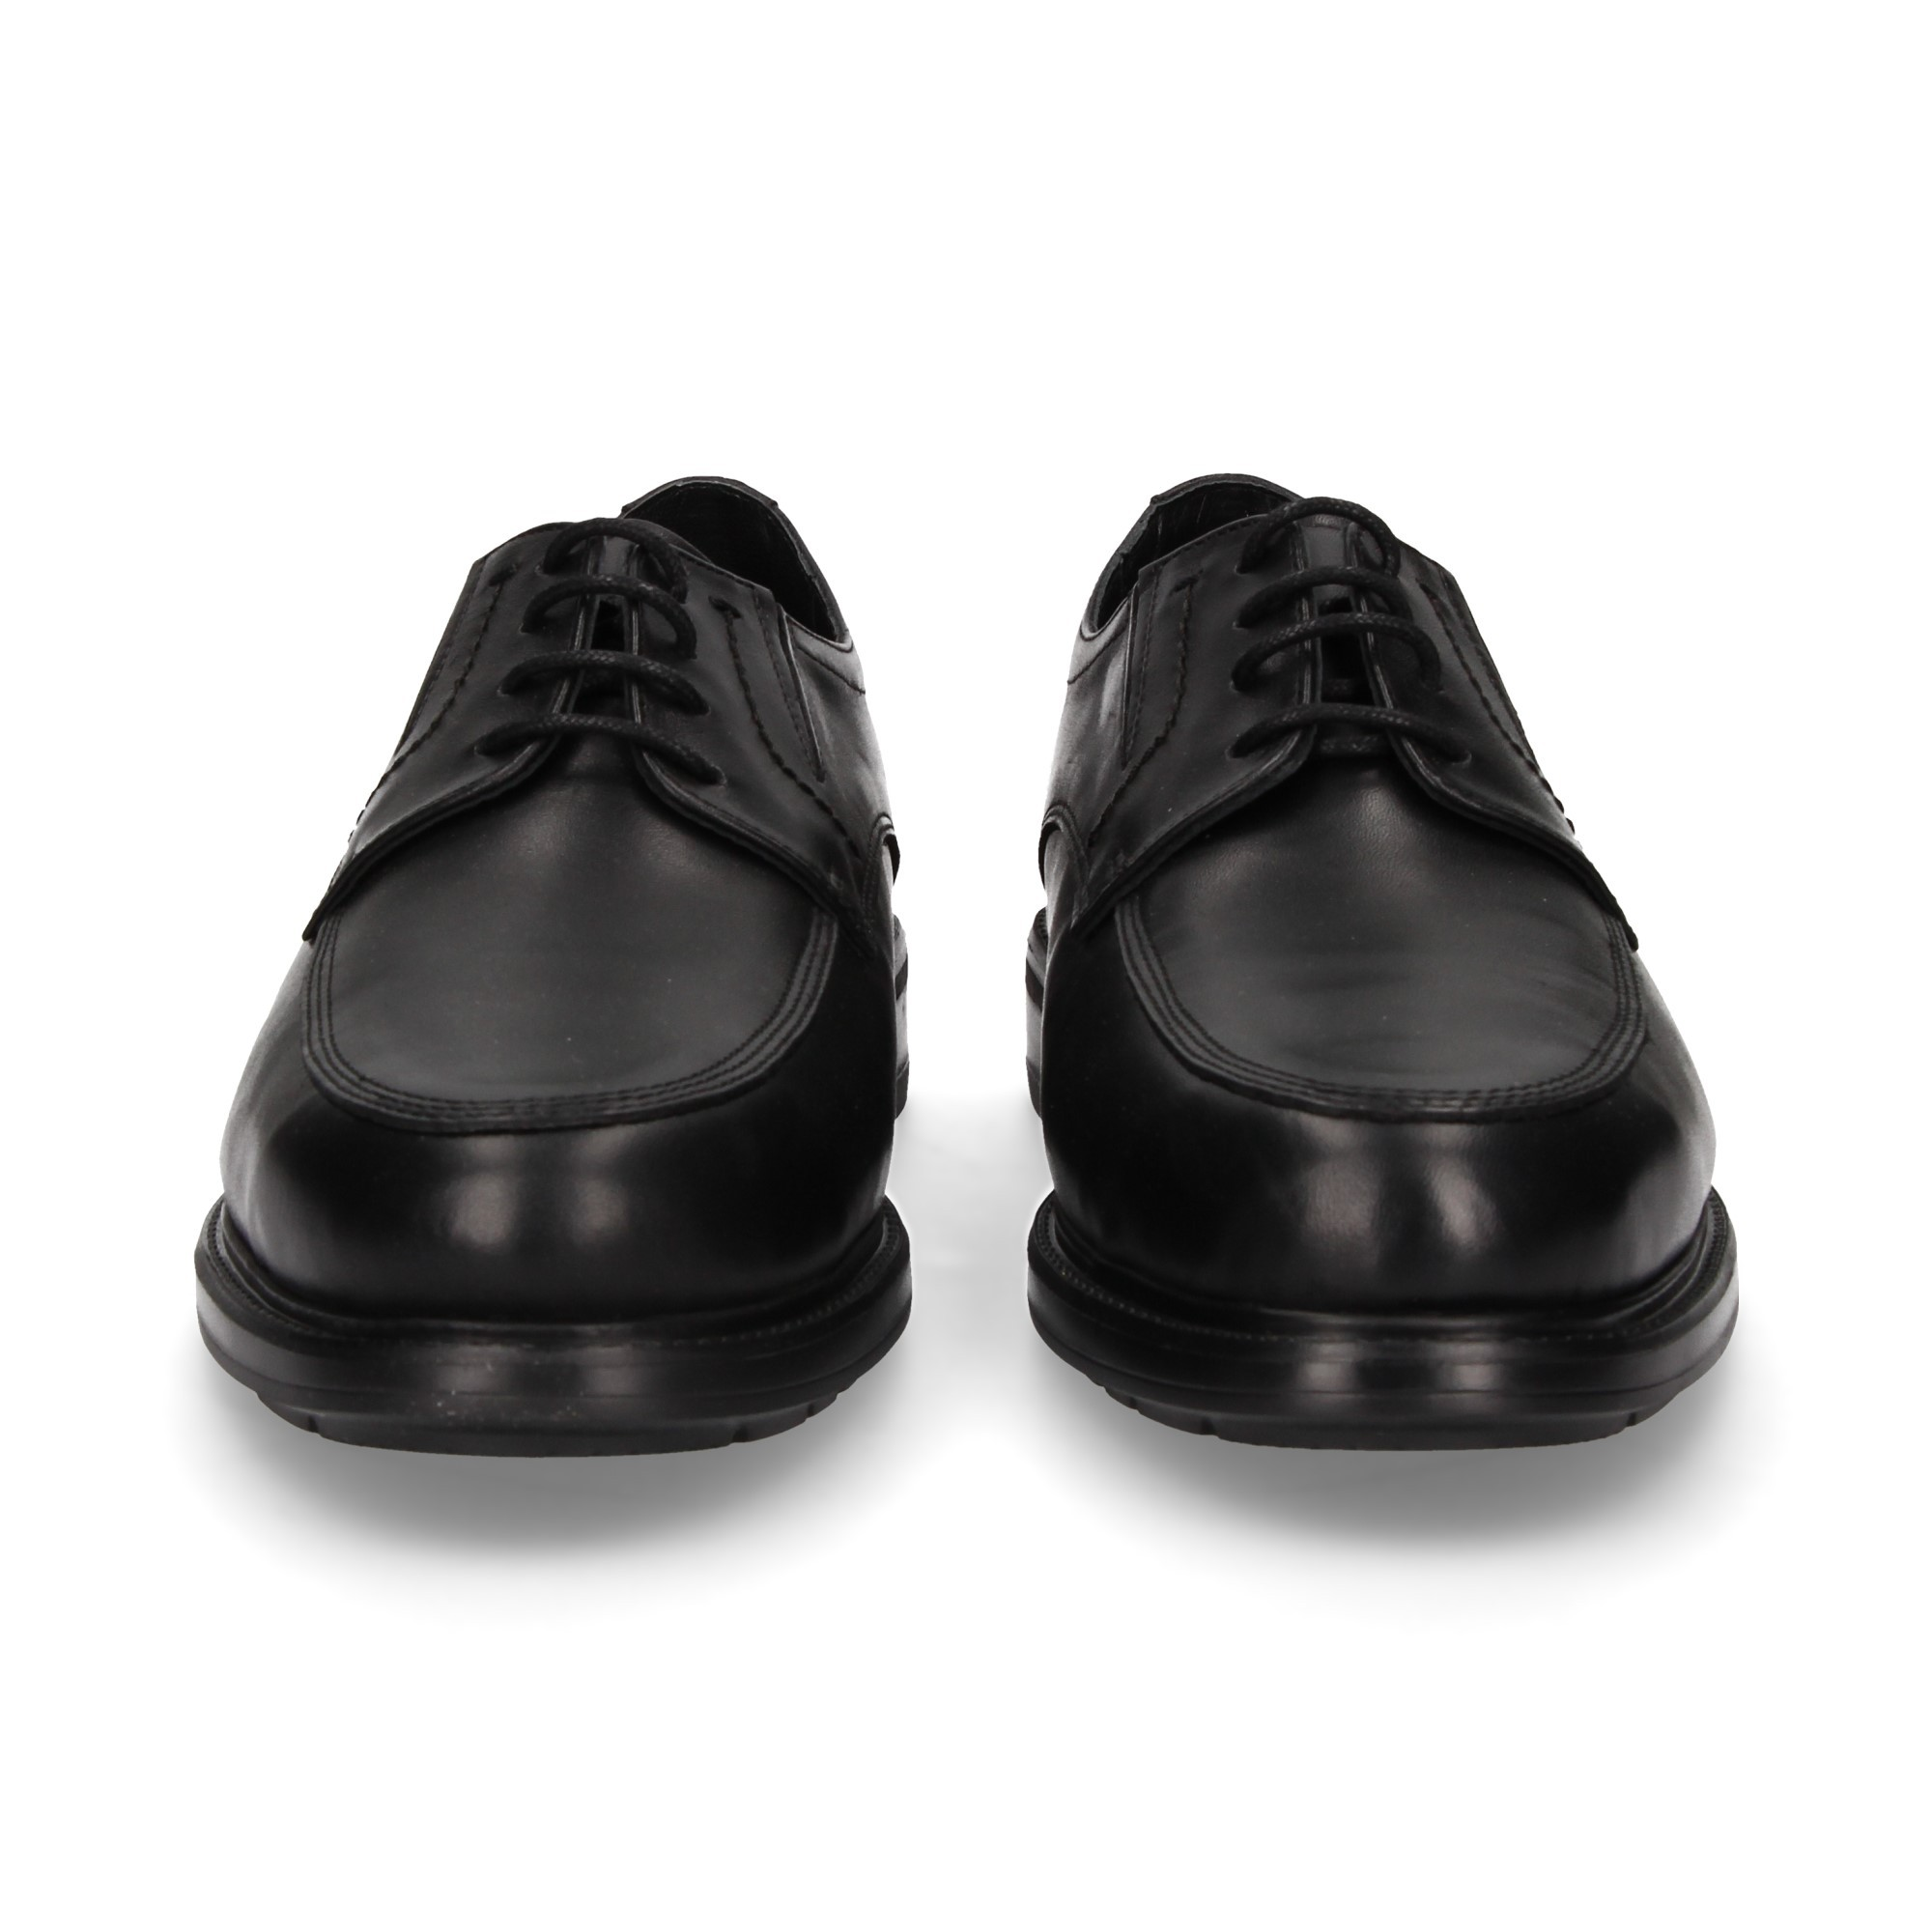 24 HORAS Men's formal shoes 10456 NEGRO 19109f0cdee5